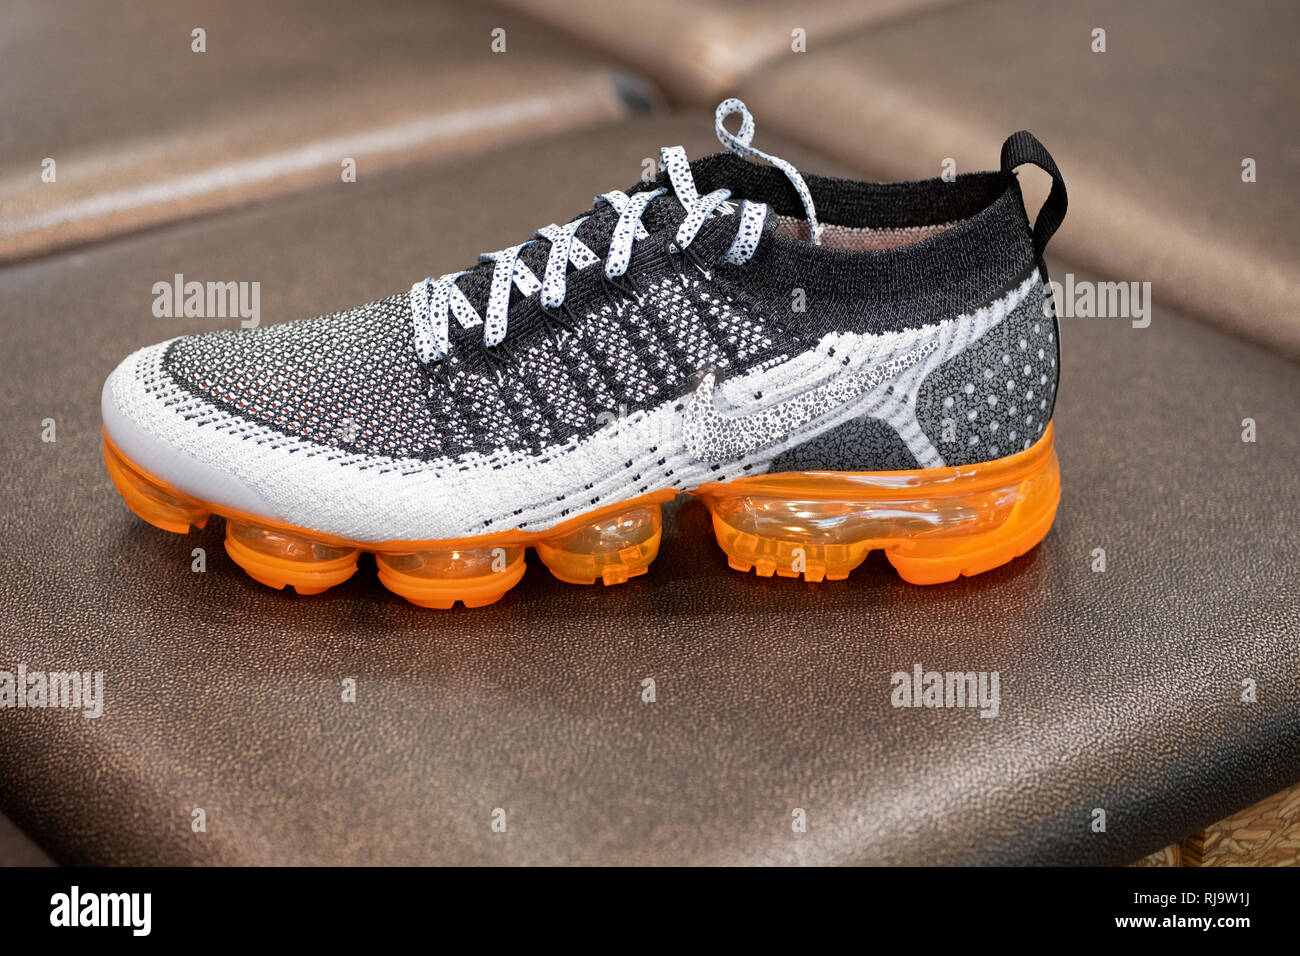 quality design 0077f e7e74 A Nike Vapormax shoe that sells for  190 a pair. At Footlocker in the Queens